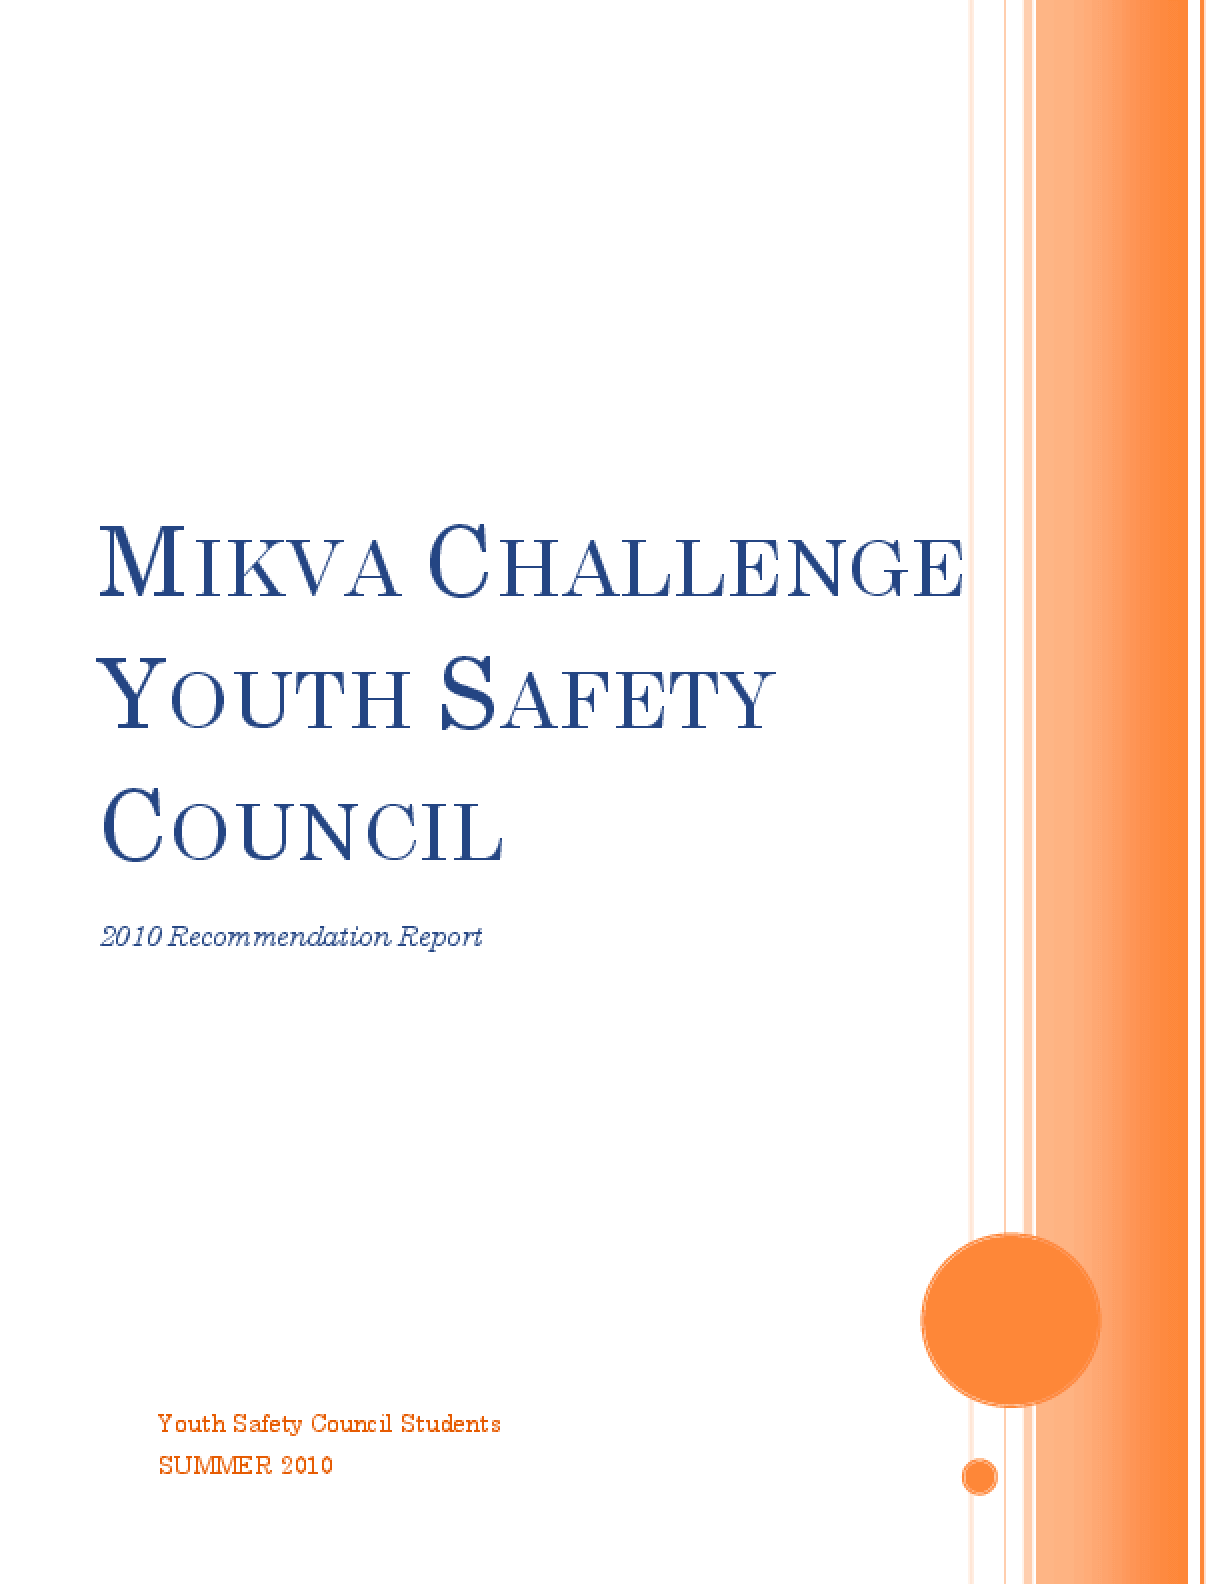 Mikva Challenge Youth Safety Council 2010 Recommendation Report